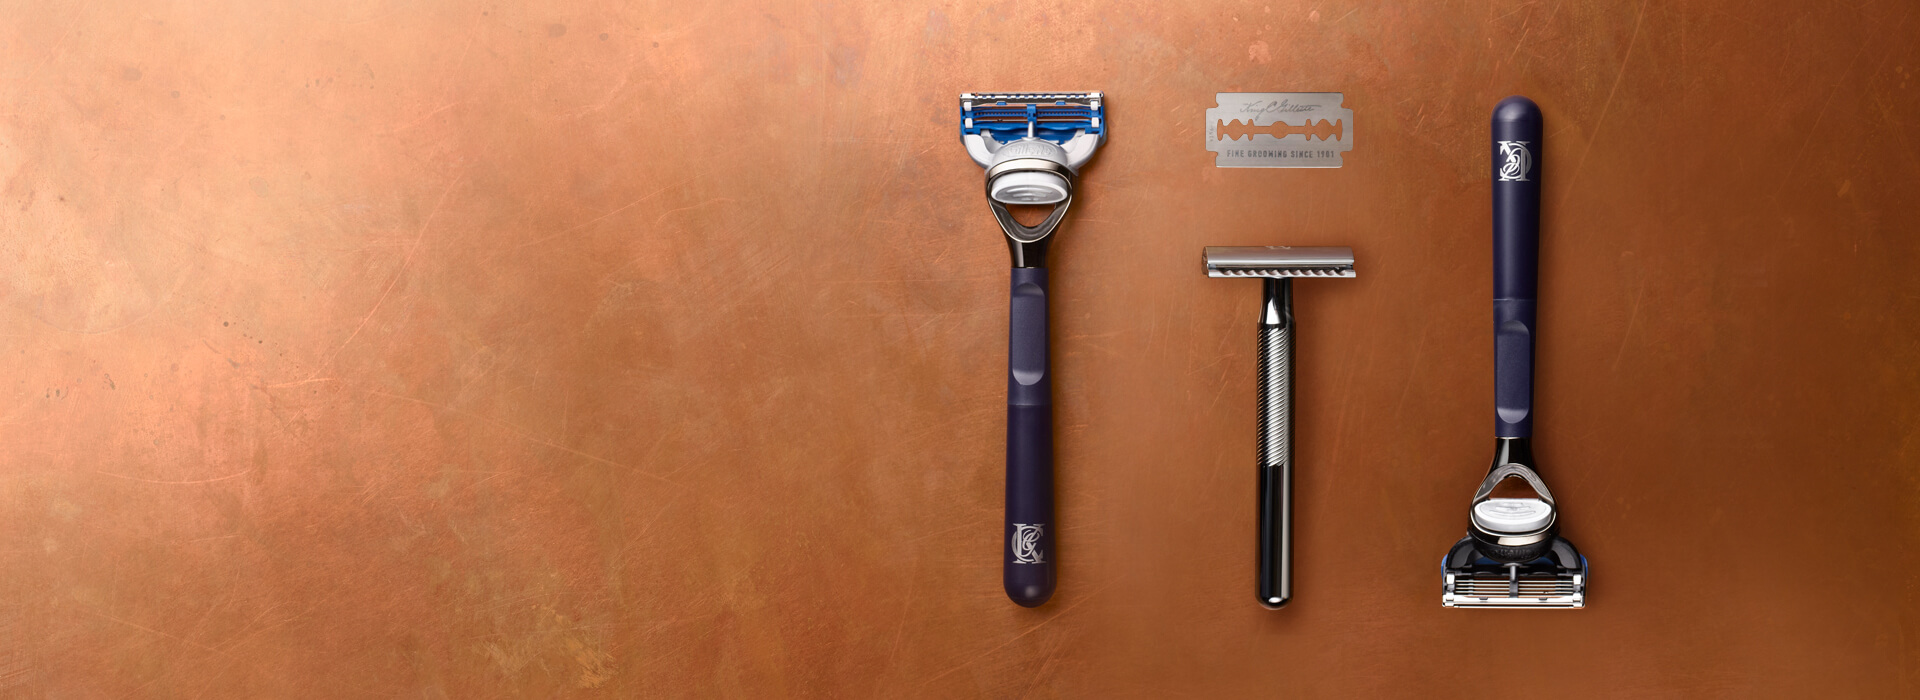 King C. Gillette Razors and Blades